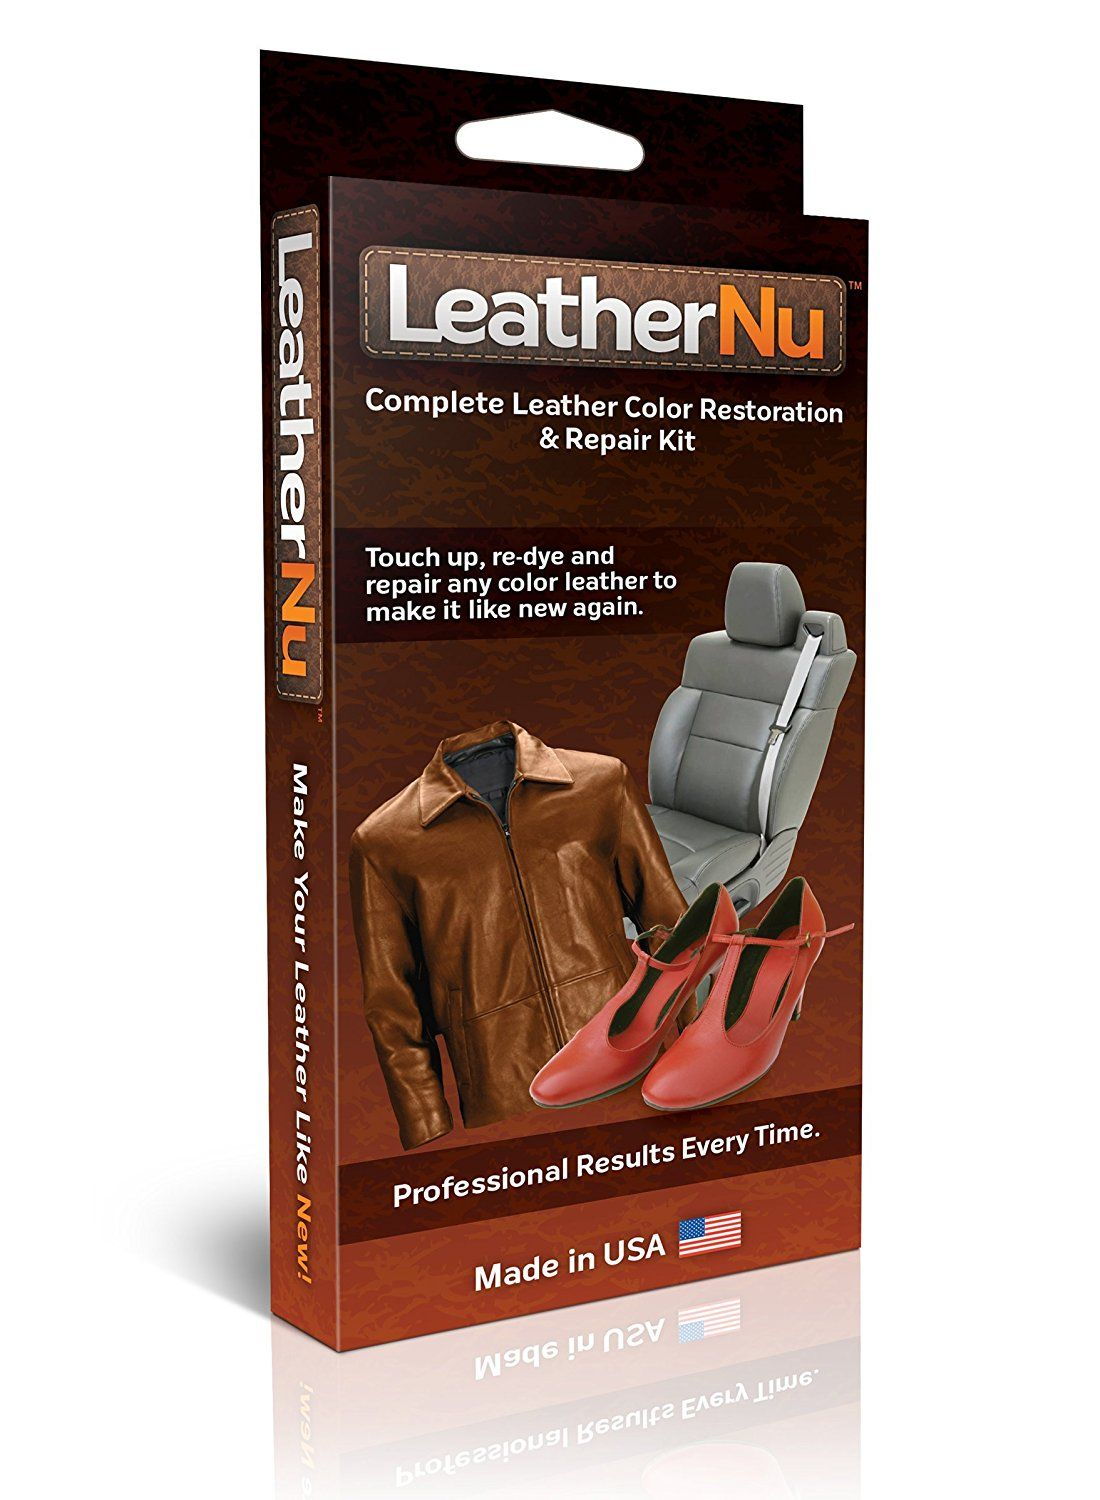 Best Leather Repair Kit (Guide and Reviews in 2020